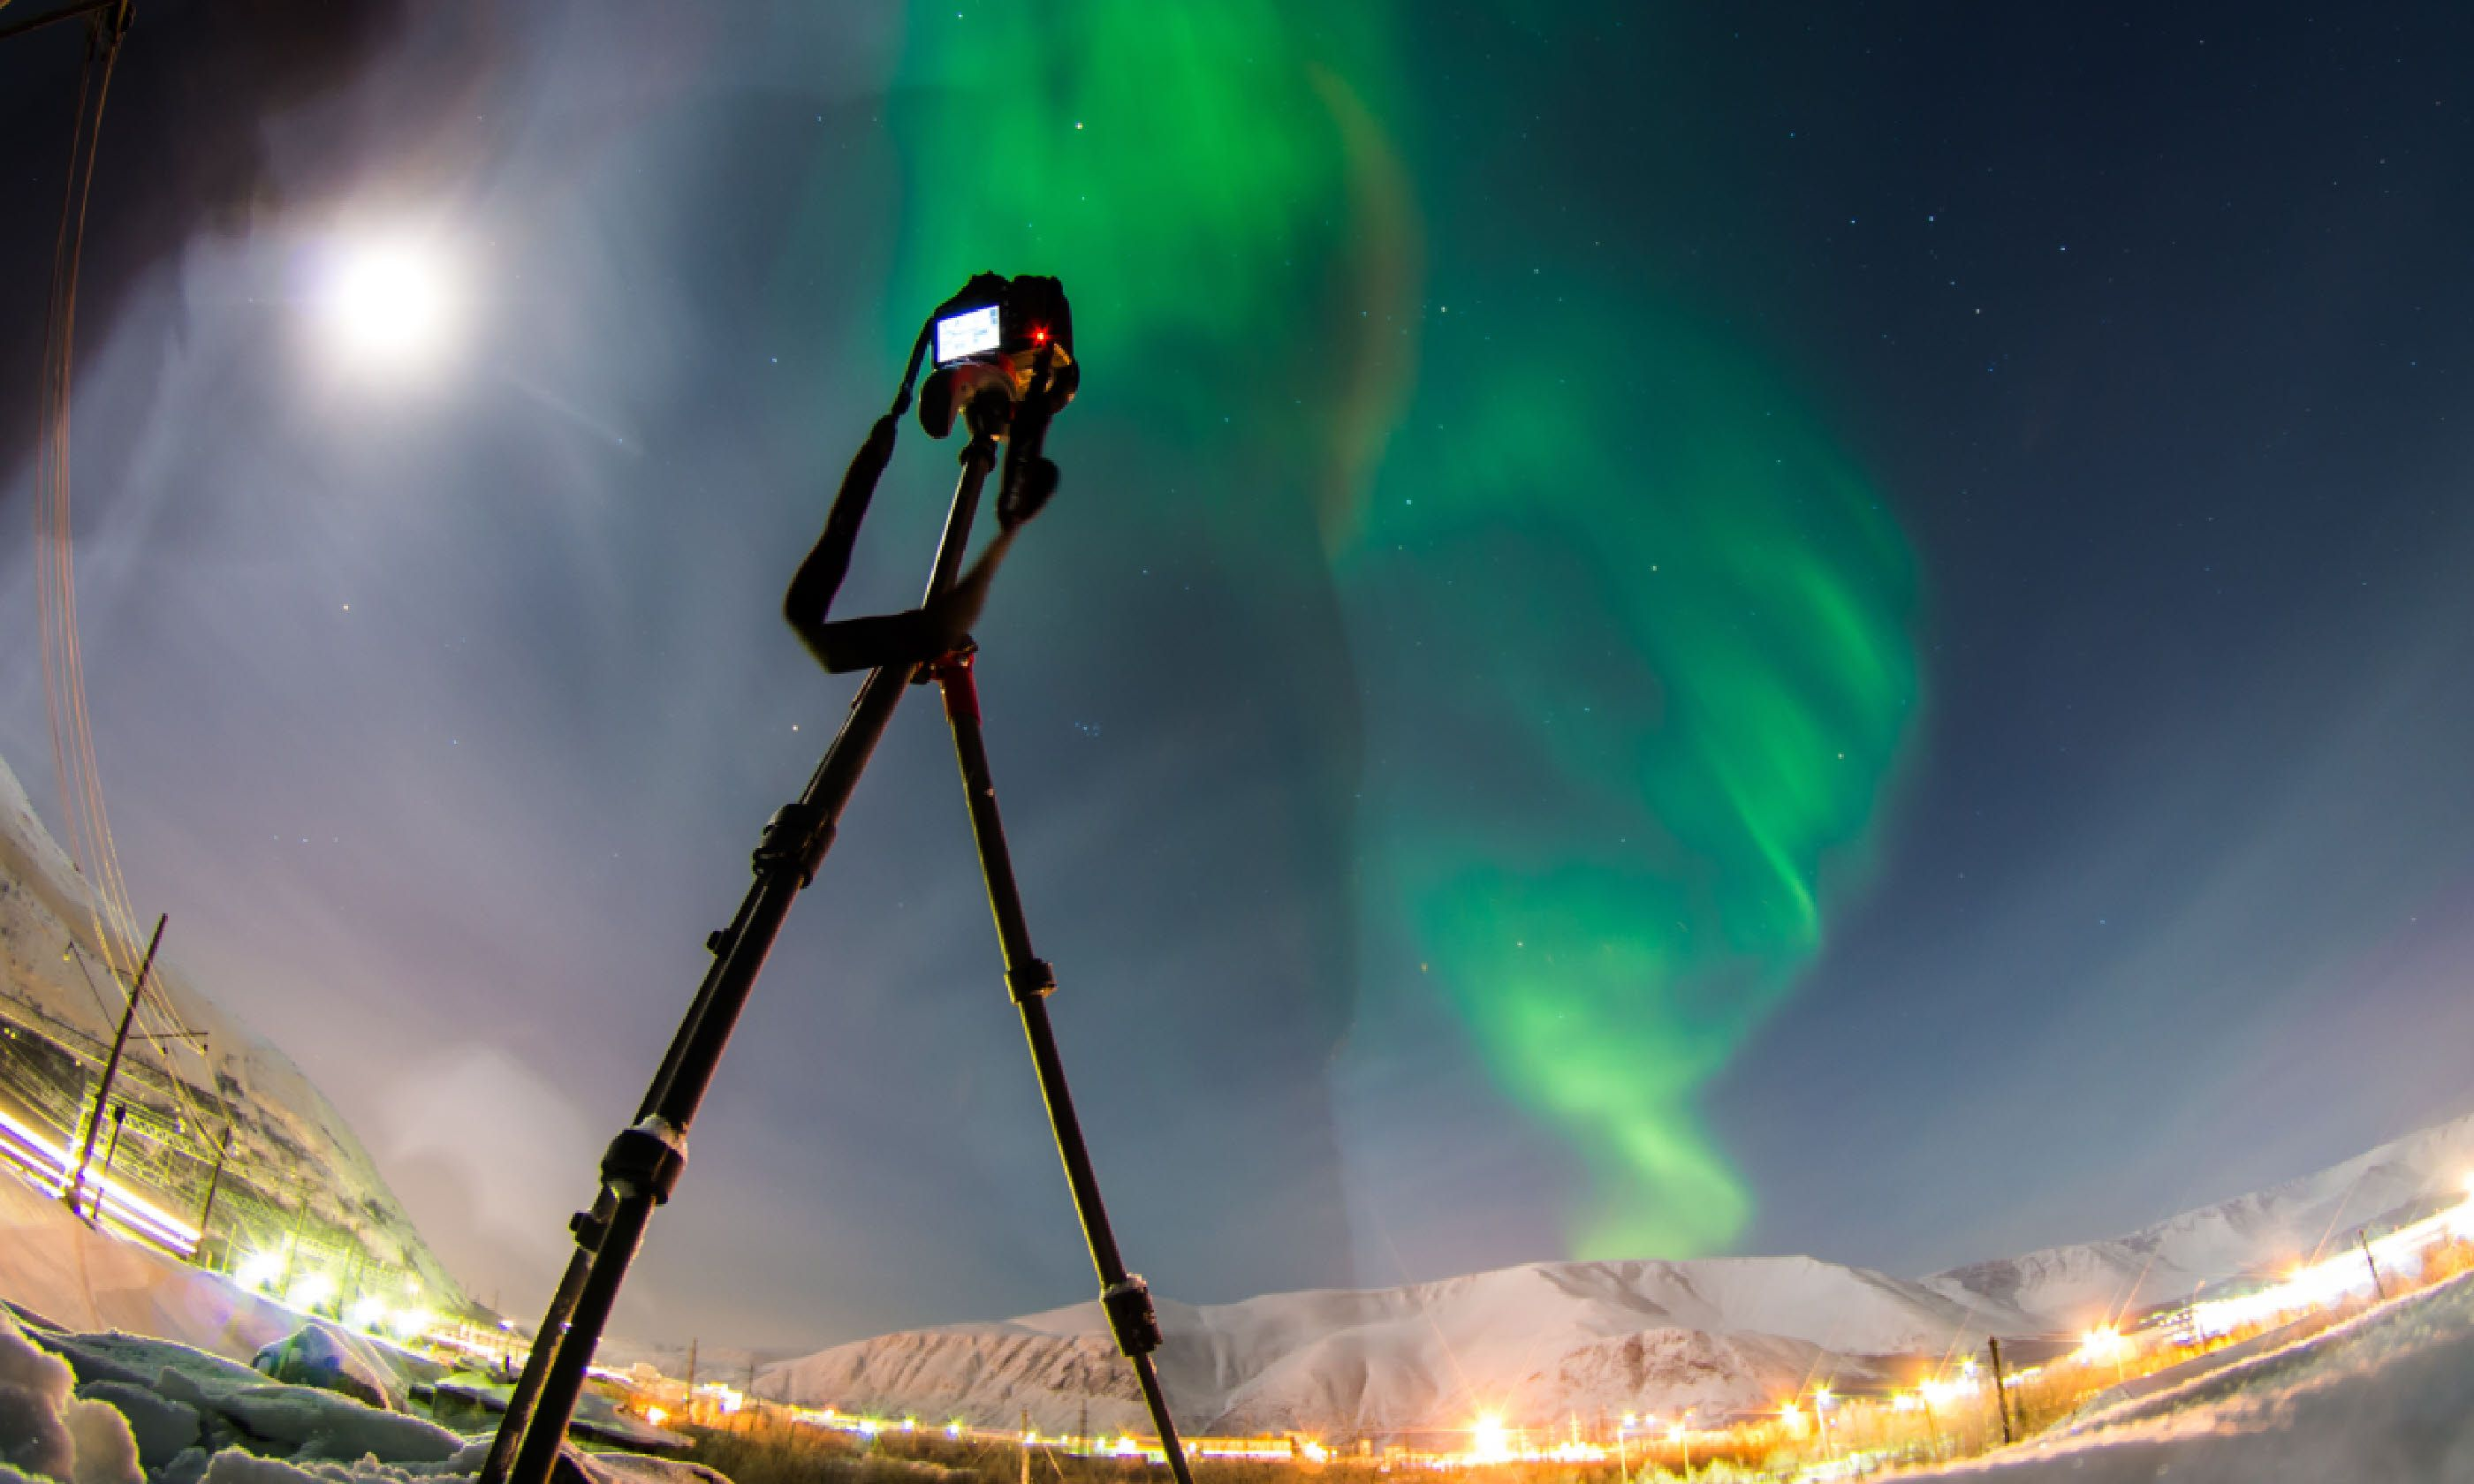 Shooting the Northern Lights (Shutterstock)